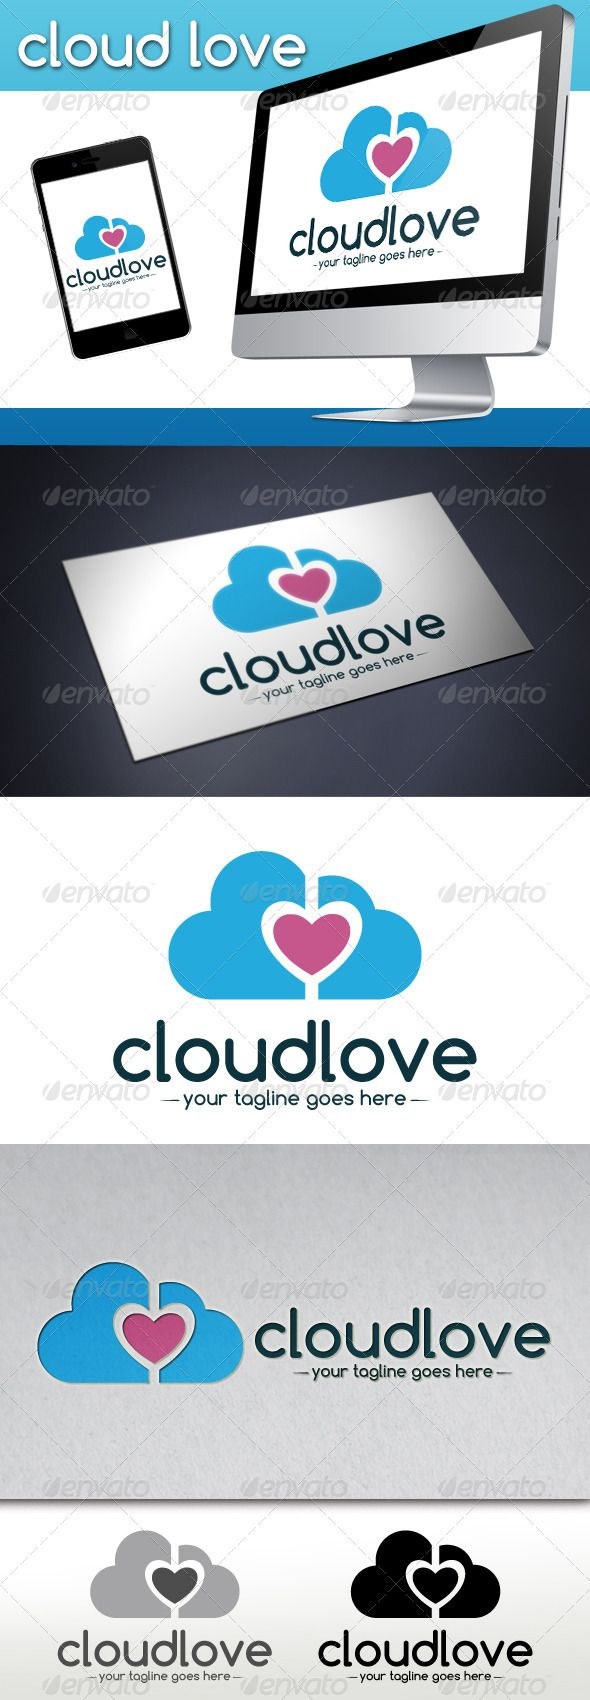 Cloud Love Logo Template  #GraphicRiver         - Three color version: color, greyscale and single color.   - The logo is 100% resizable.   - You can change text and colors very easy using the named and organized layers that includes the file.   - The typography used is comfortaa you can download here:  .dafont /es/comfortaa.font       Created: 20January13 GraphicsFilesIncluded: VectorEPS #AIIllustrator Layered: Yes MinimumAdobeCSVersion: CS Resolution: Resizable Tags: app #chat #cloudlogo…